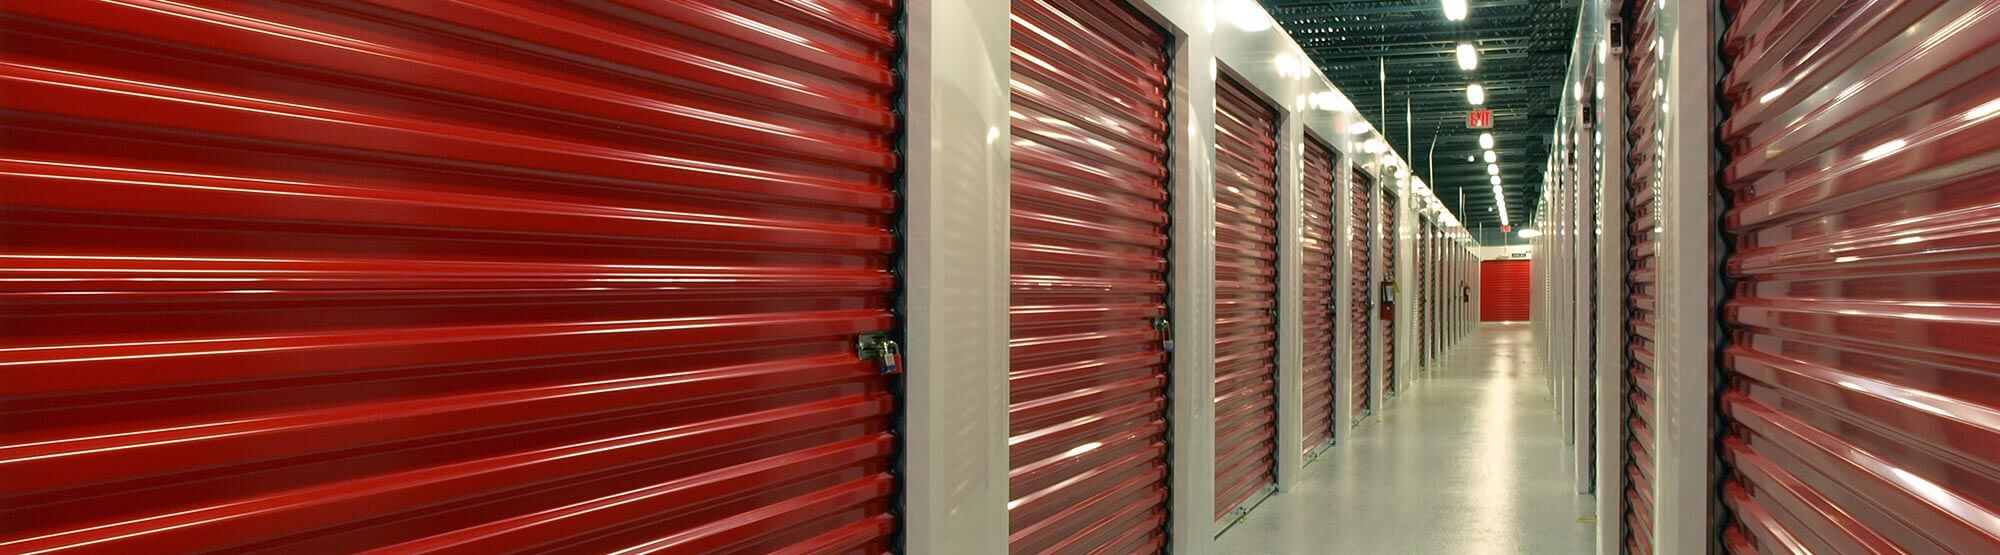 Row of red indoor American Personal Storage units